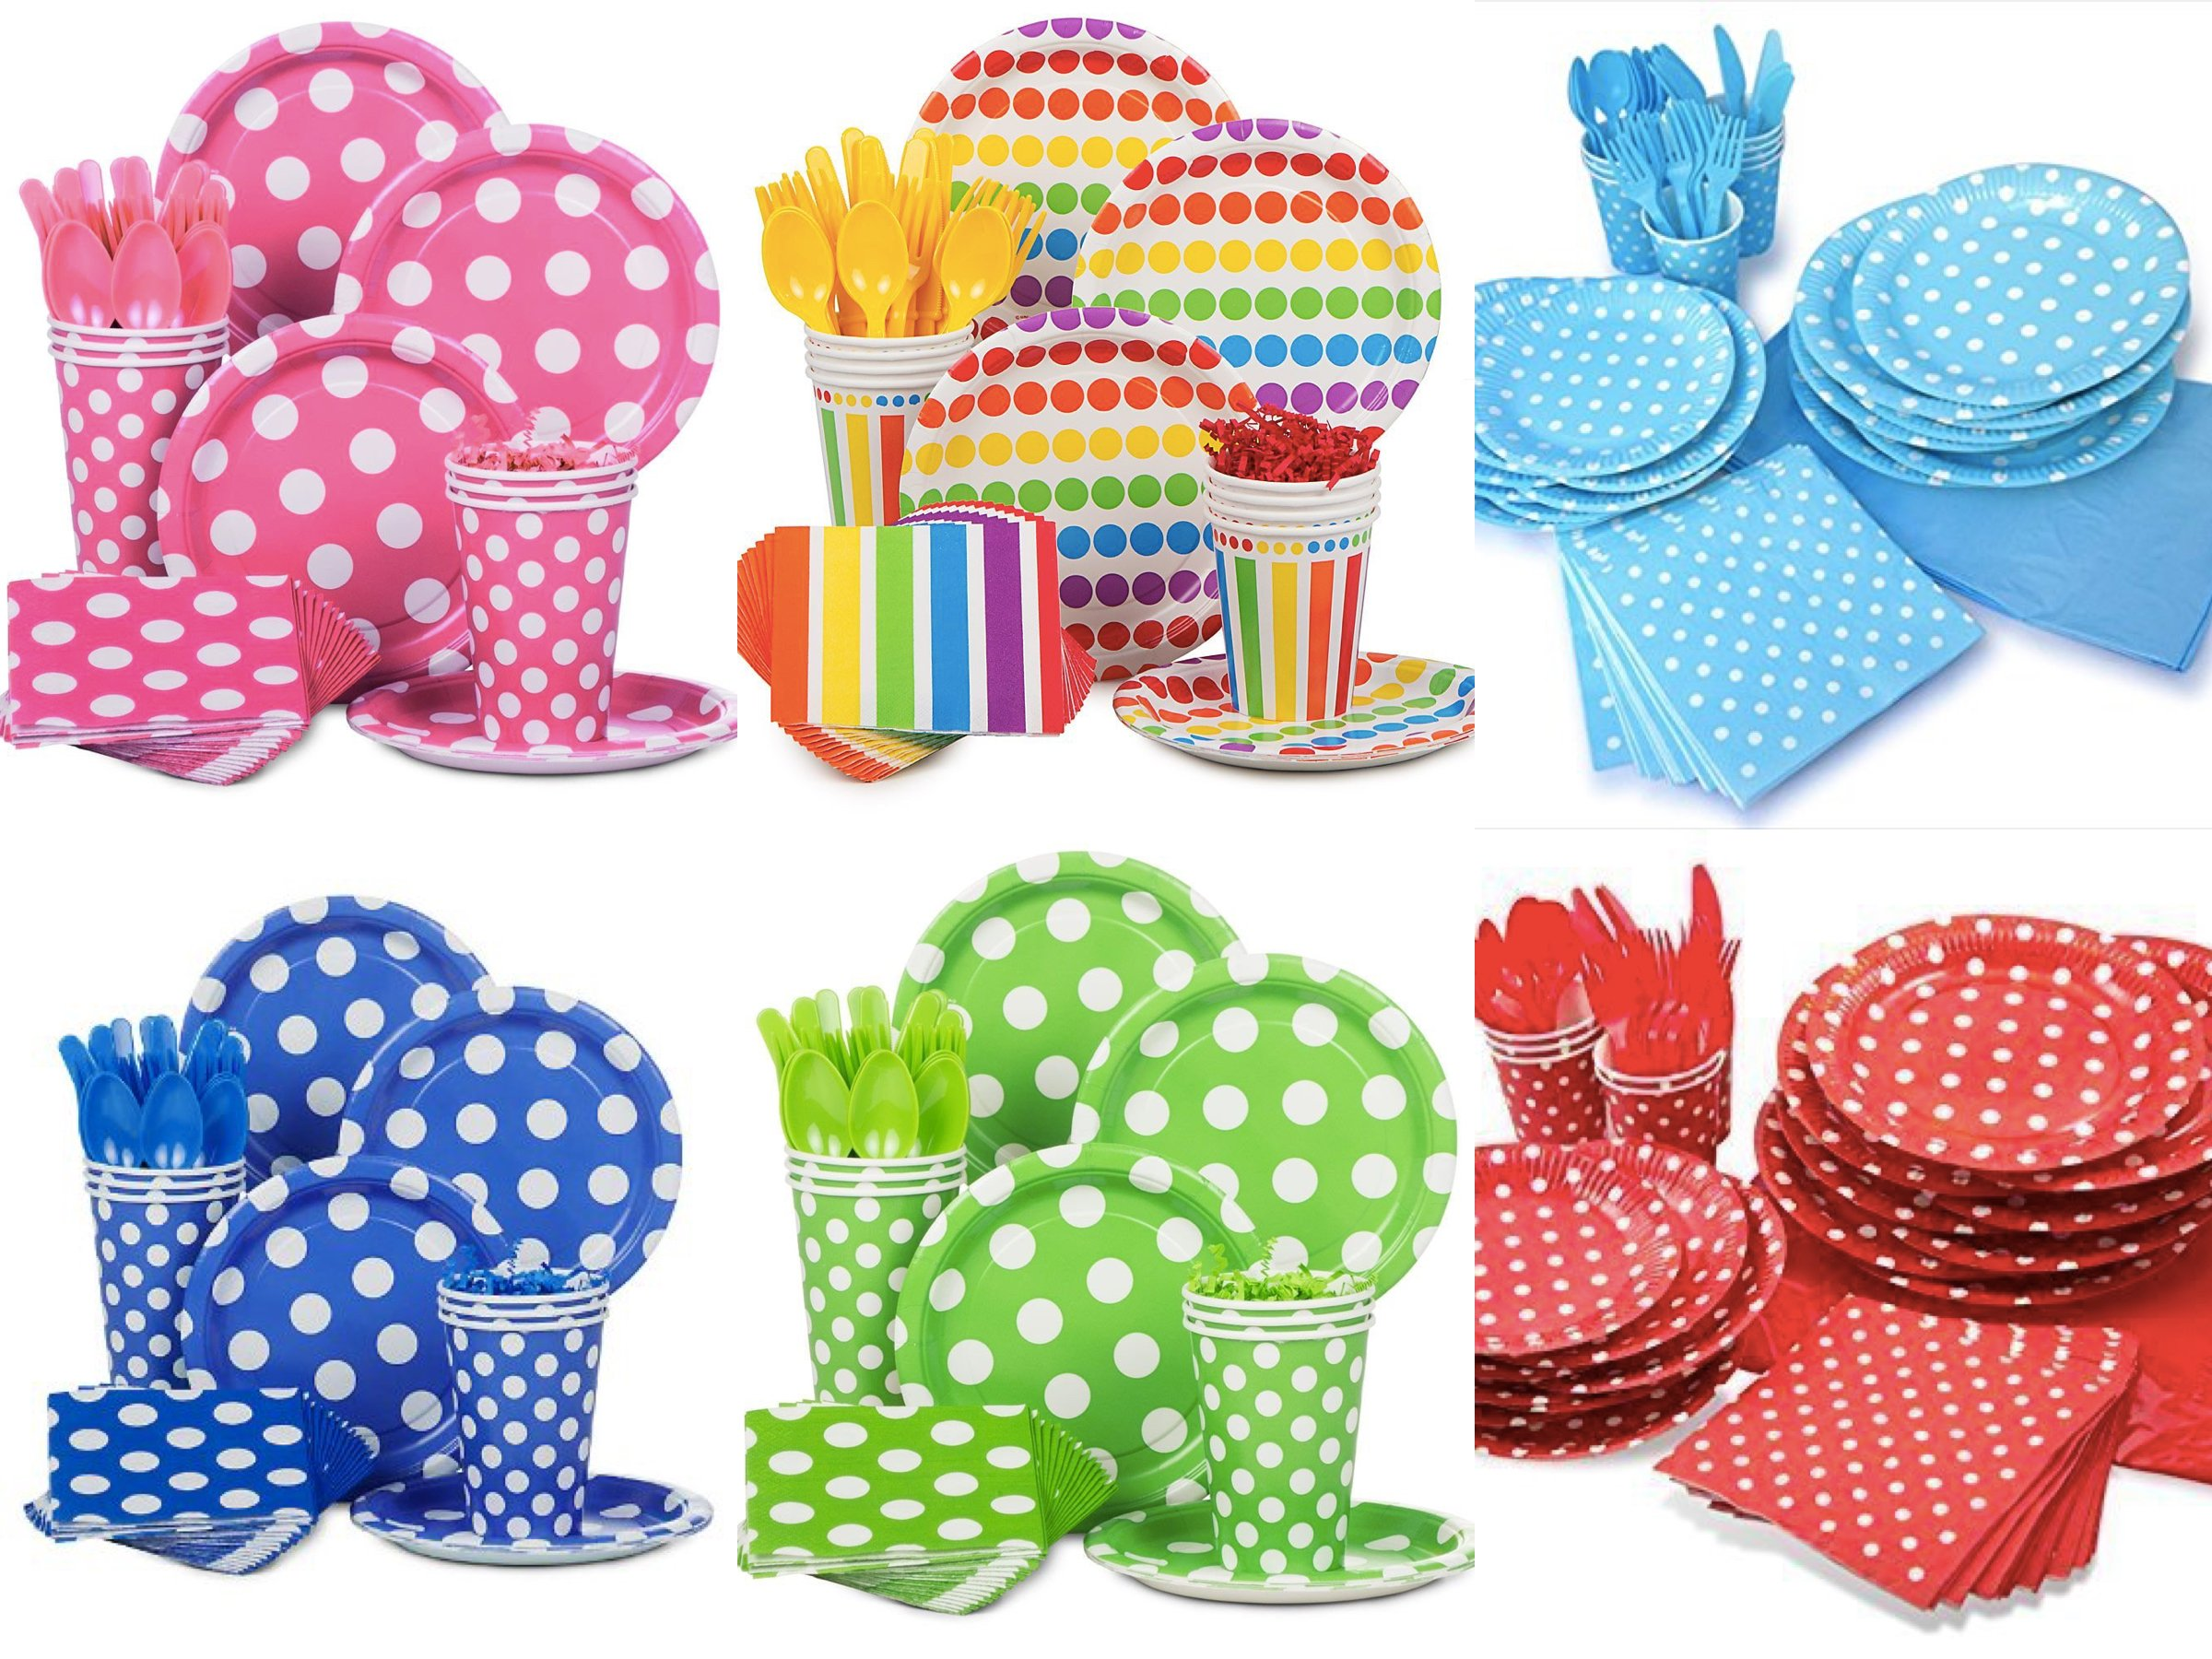 More Polka Dot Party Supplies